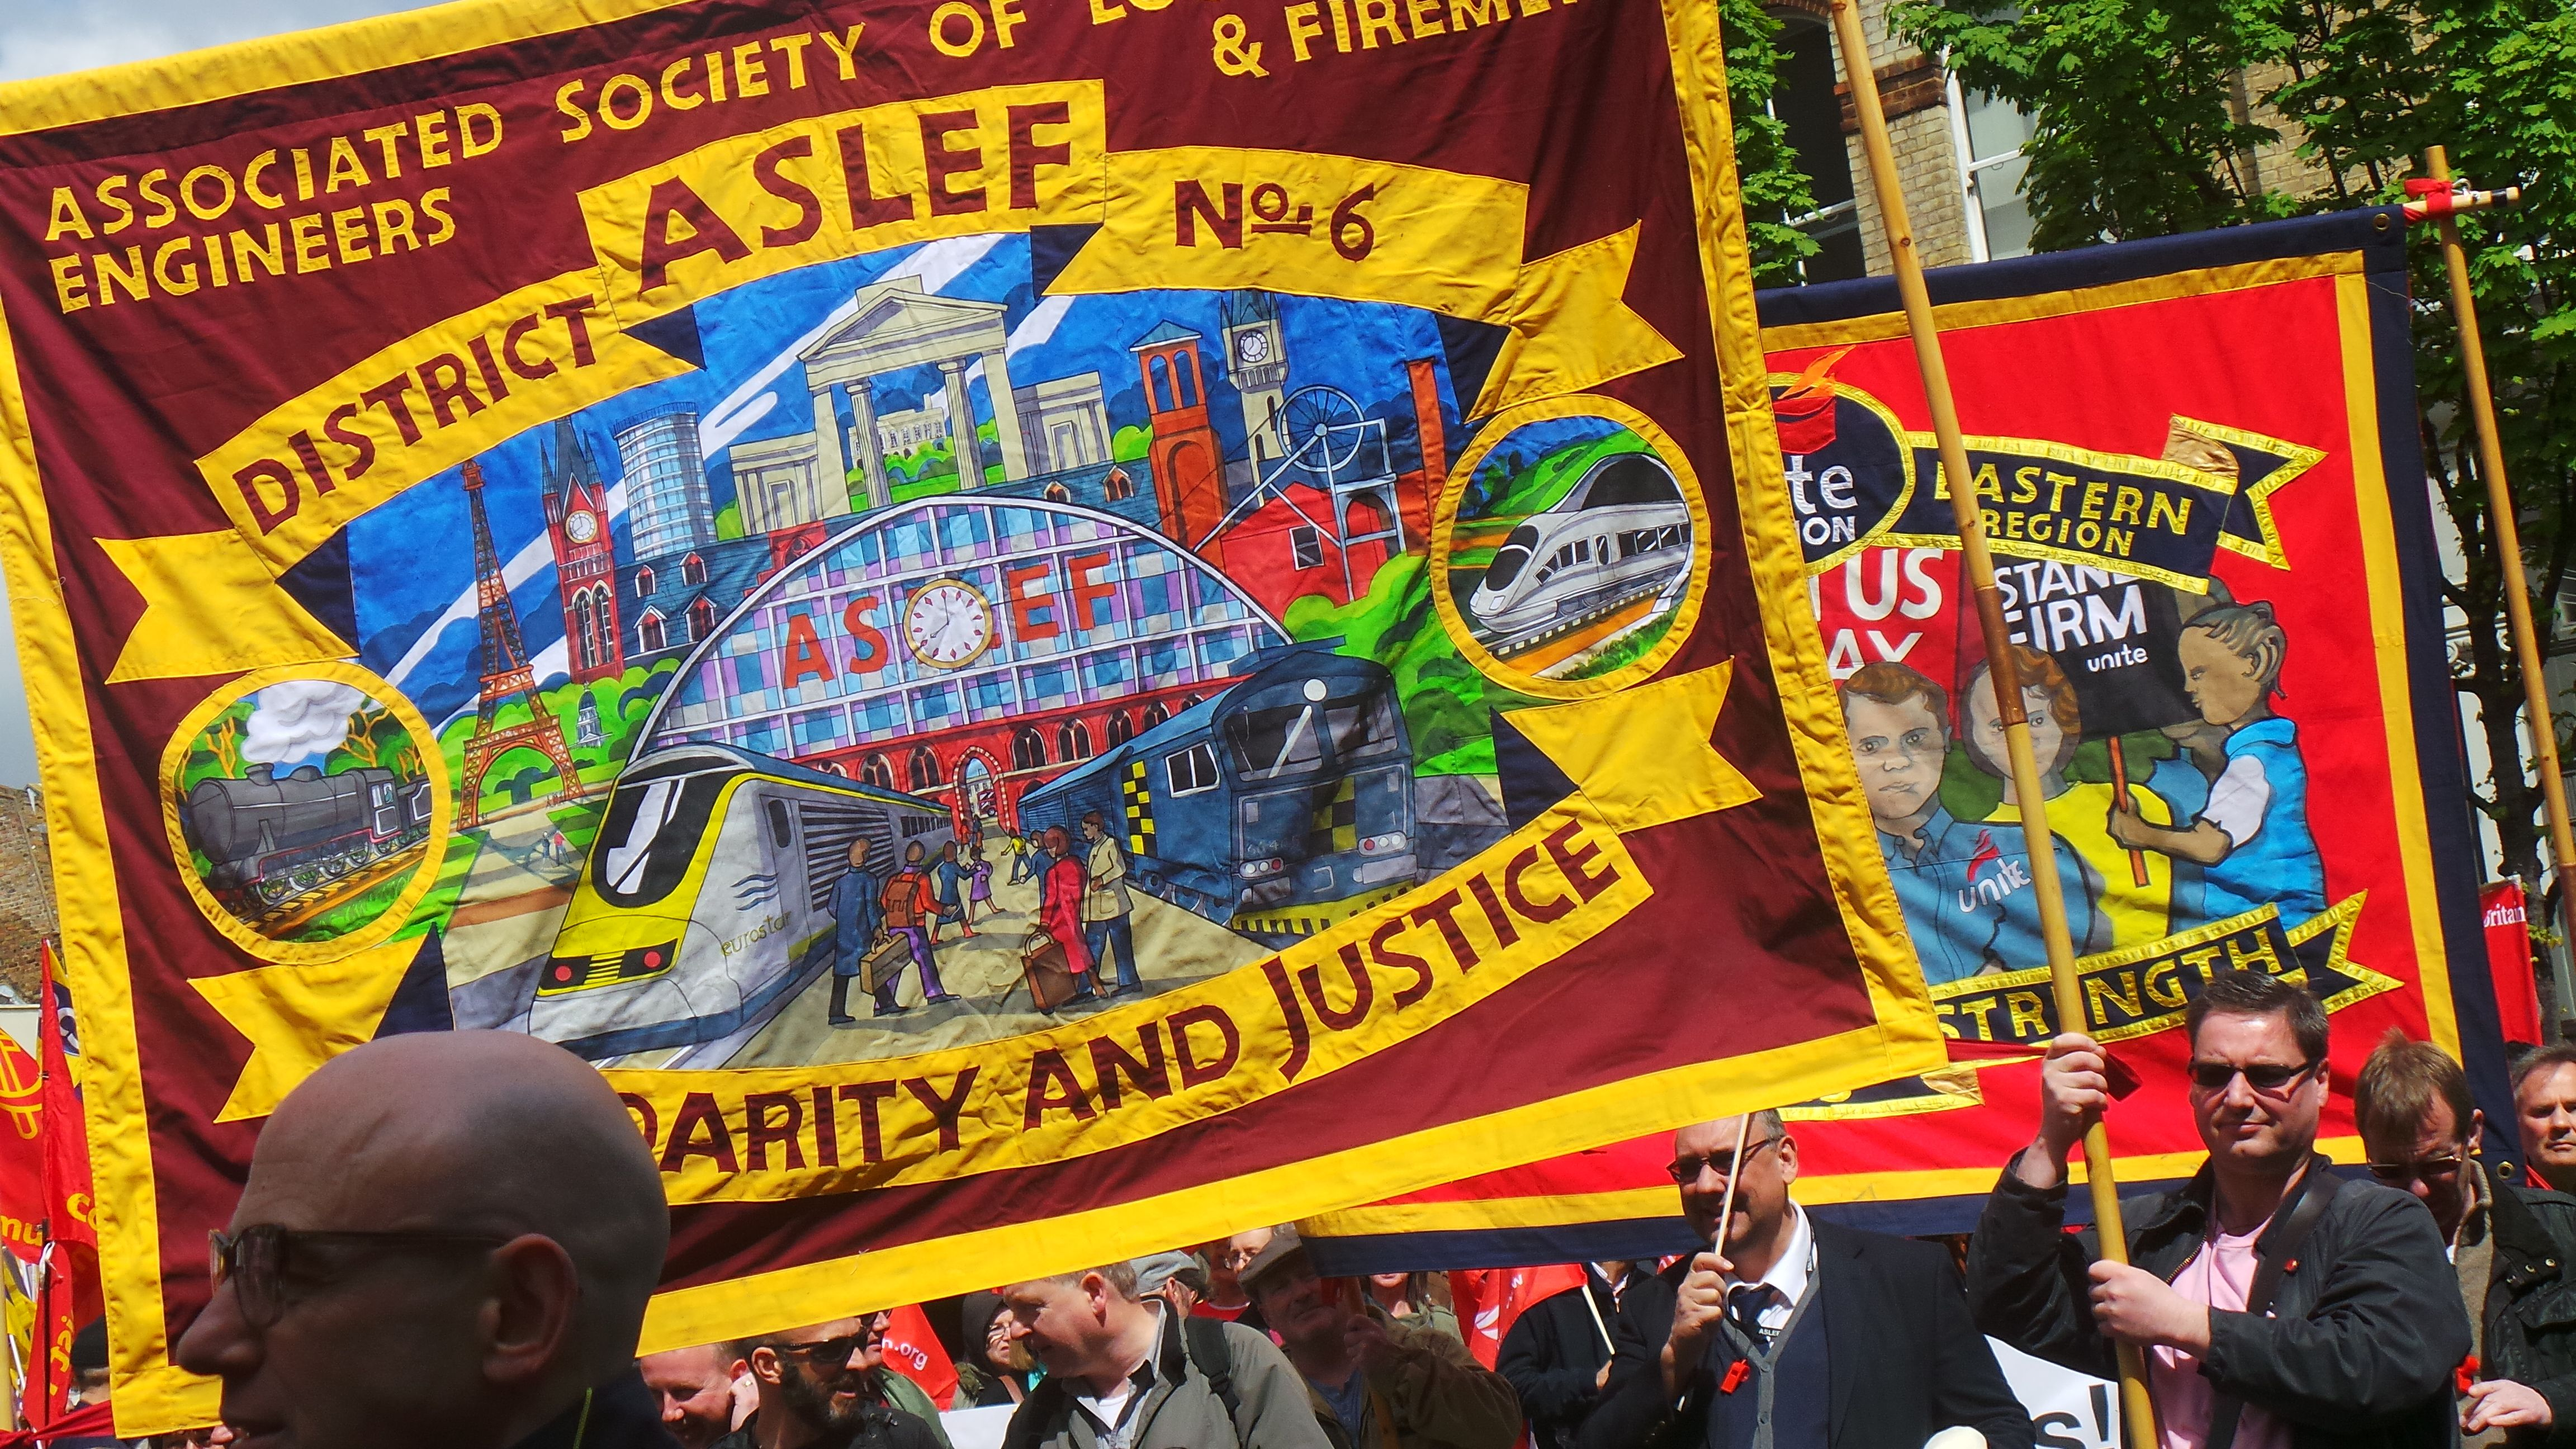 London May Day 2015 march Us regions, May days, London